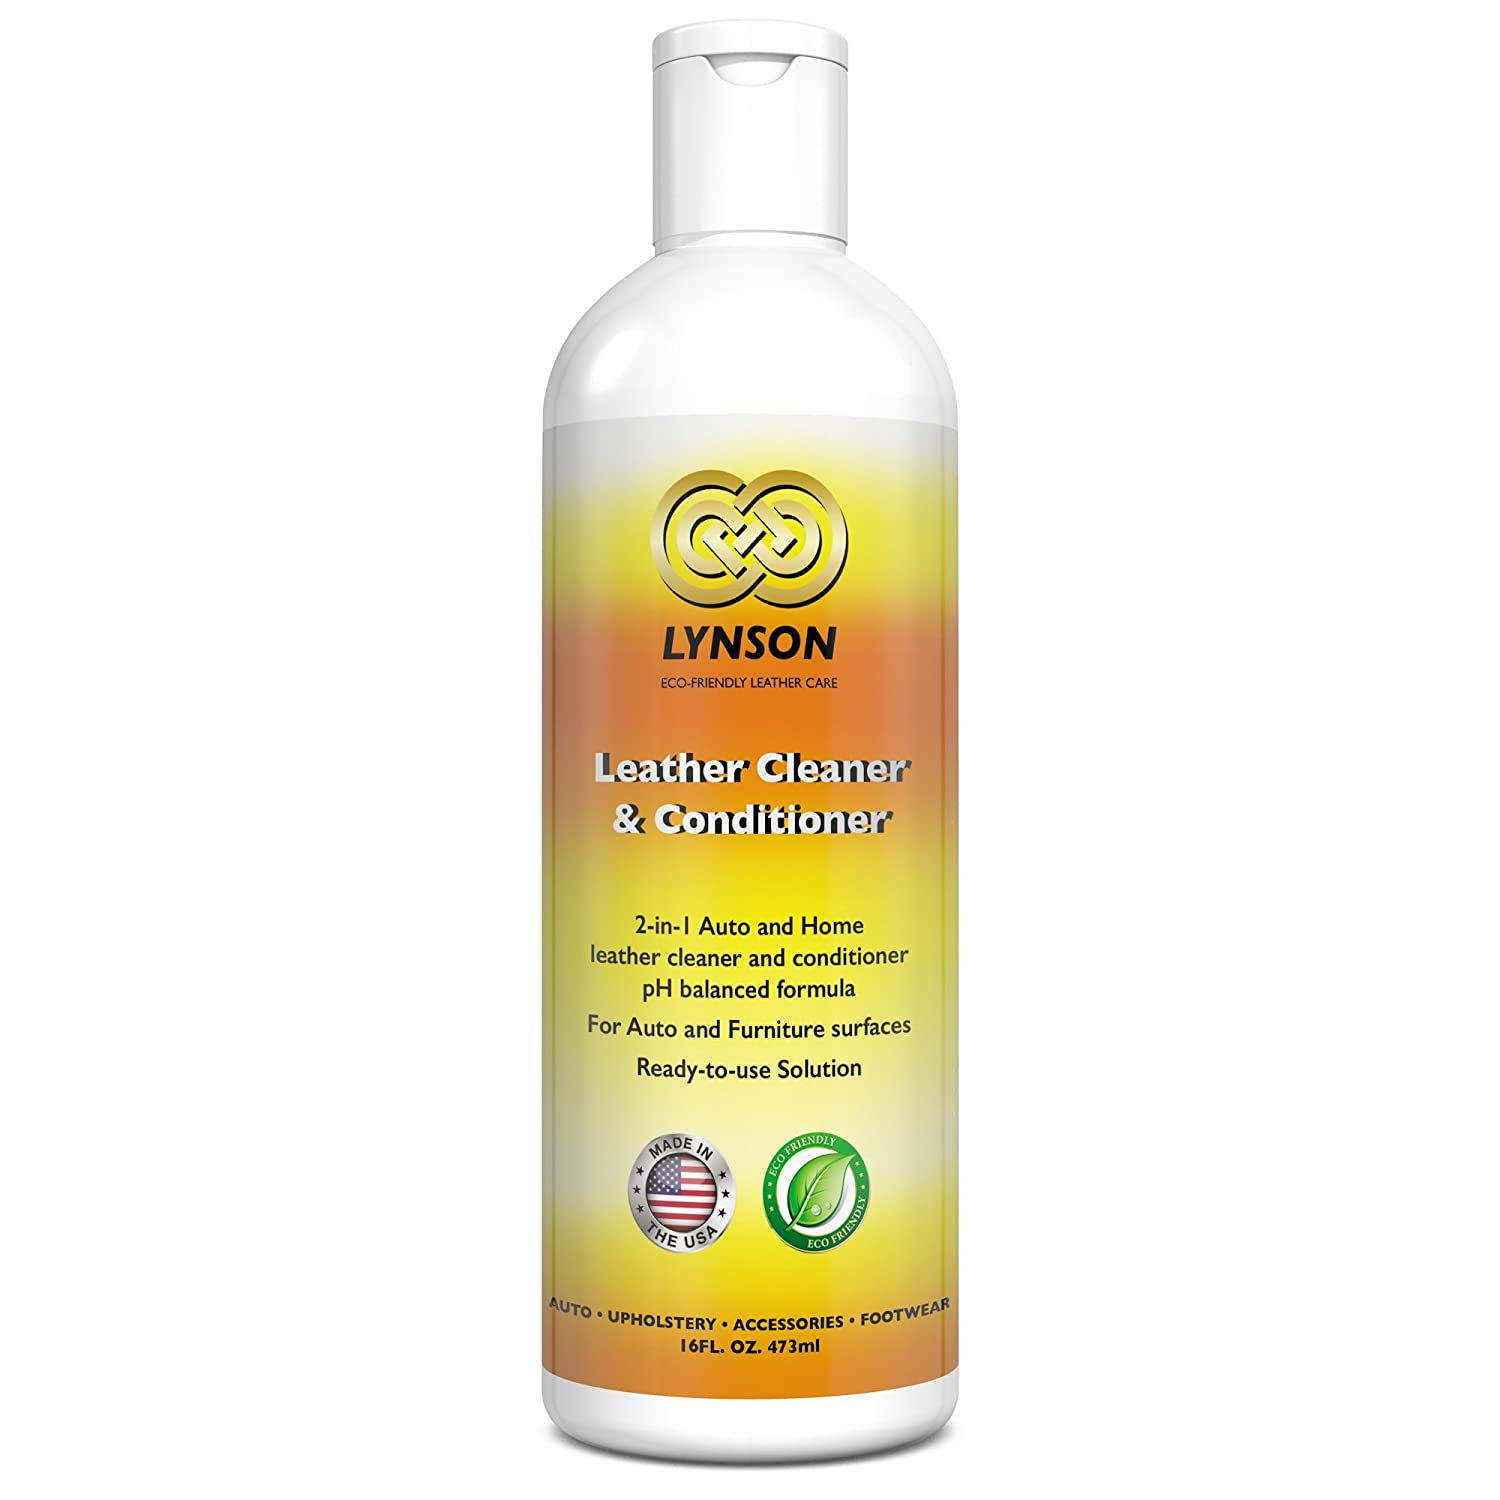 Amazon.com: LYNSON Leather Cleaner and Conditioner - Eco-Friendly ...